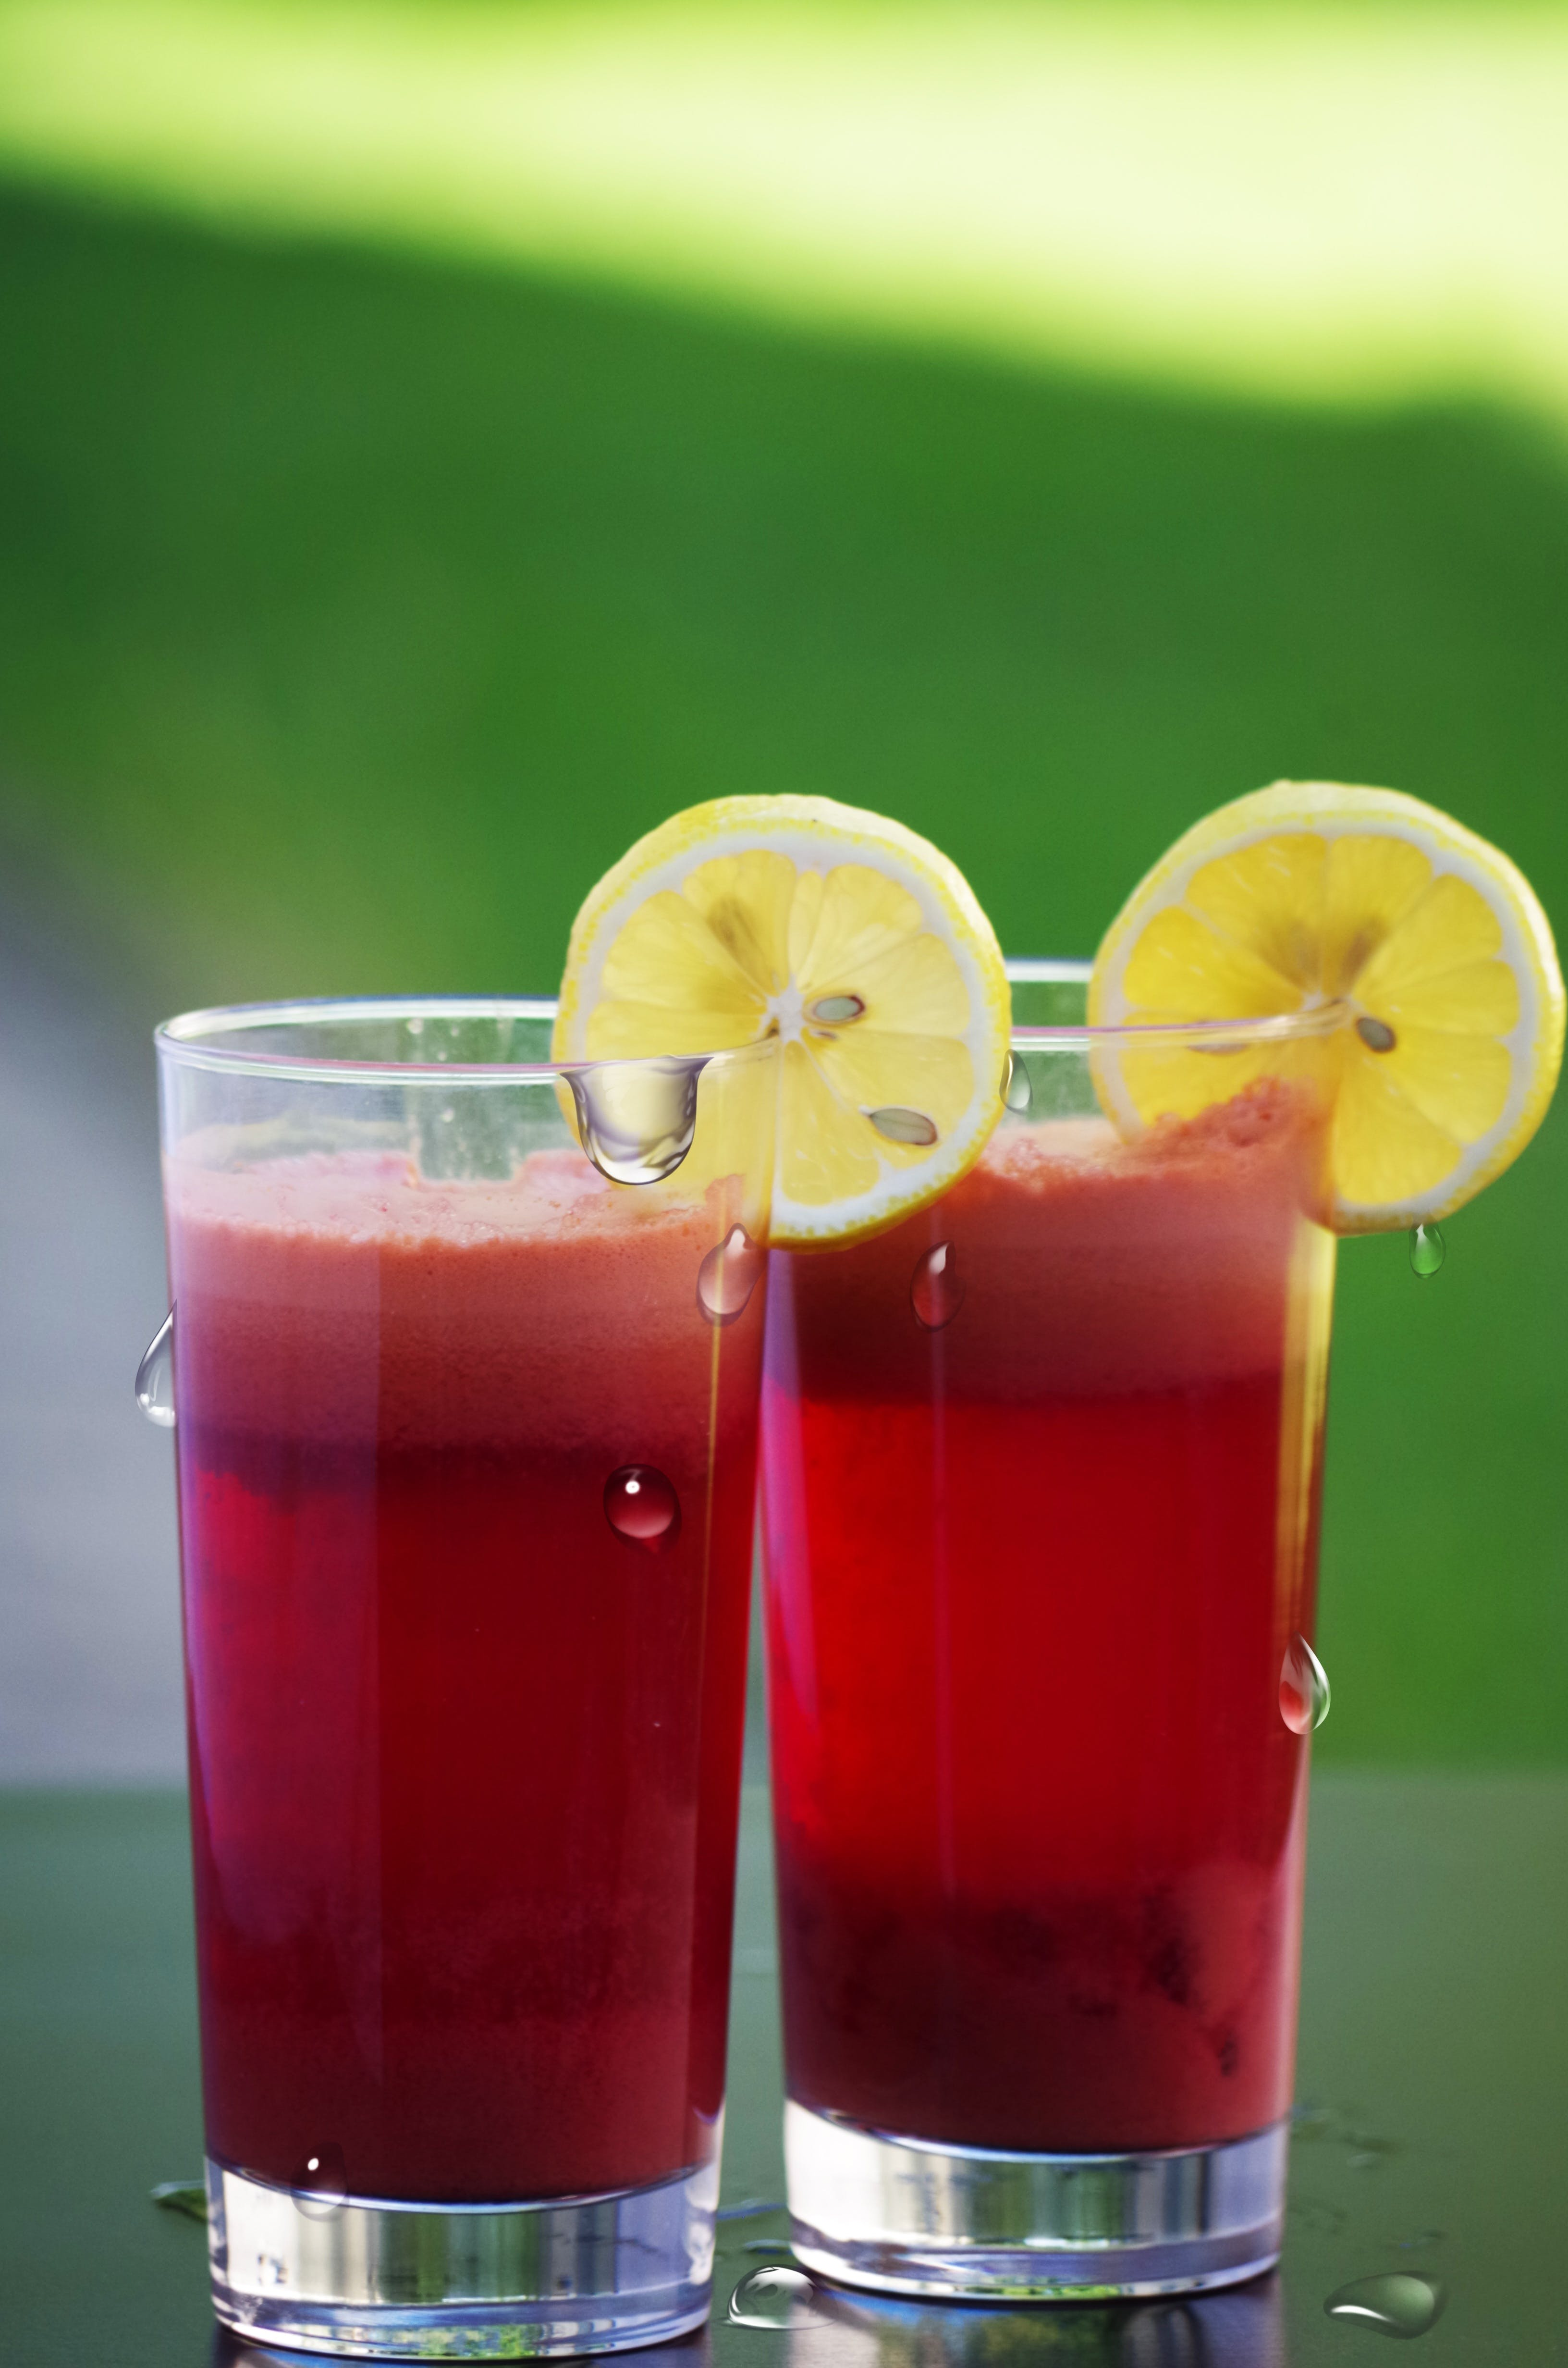 Clear Drinking Glass Filled With Red Liquid With Sliced Lemon